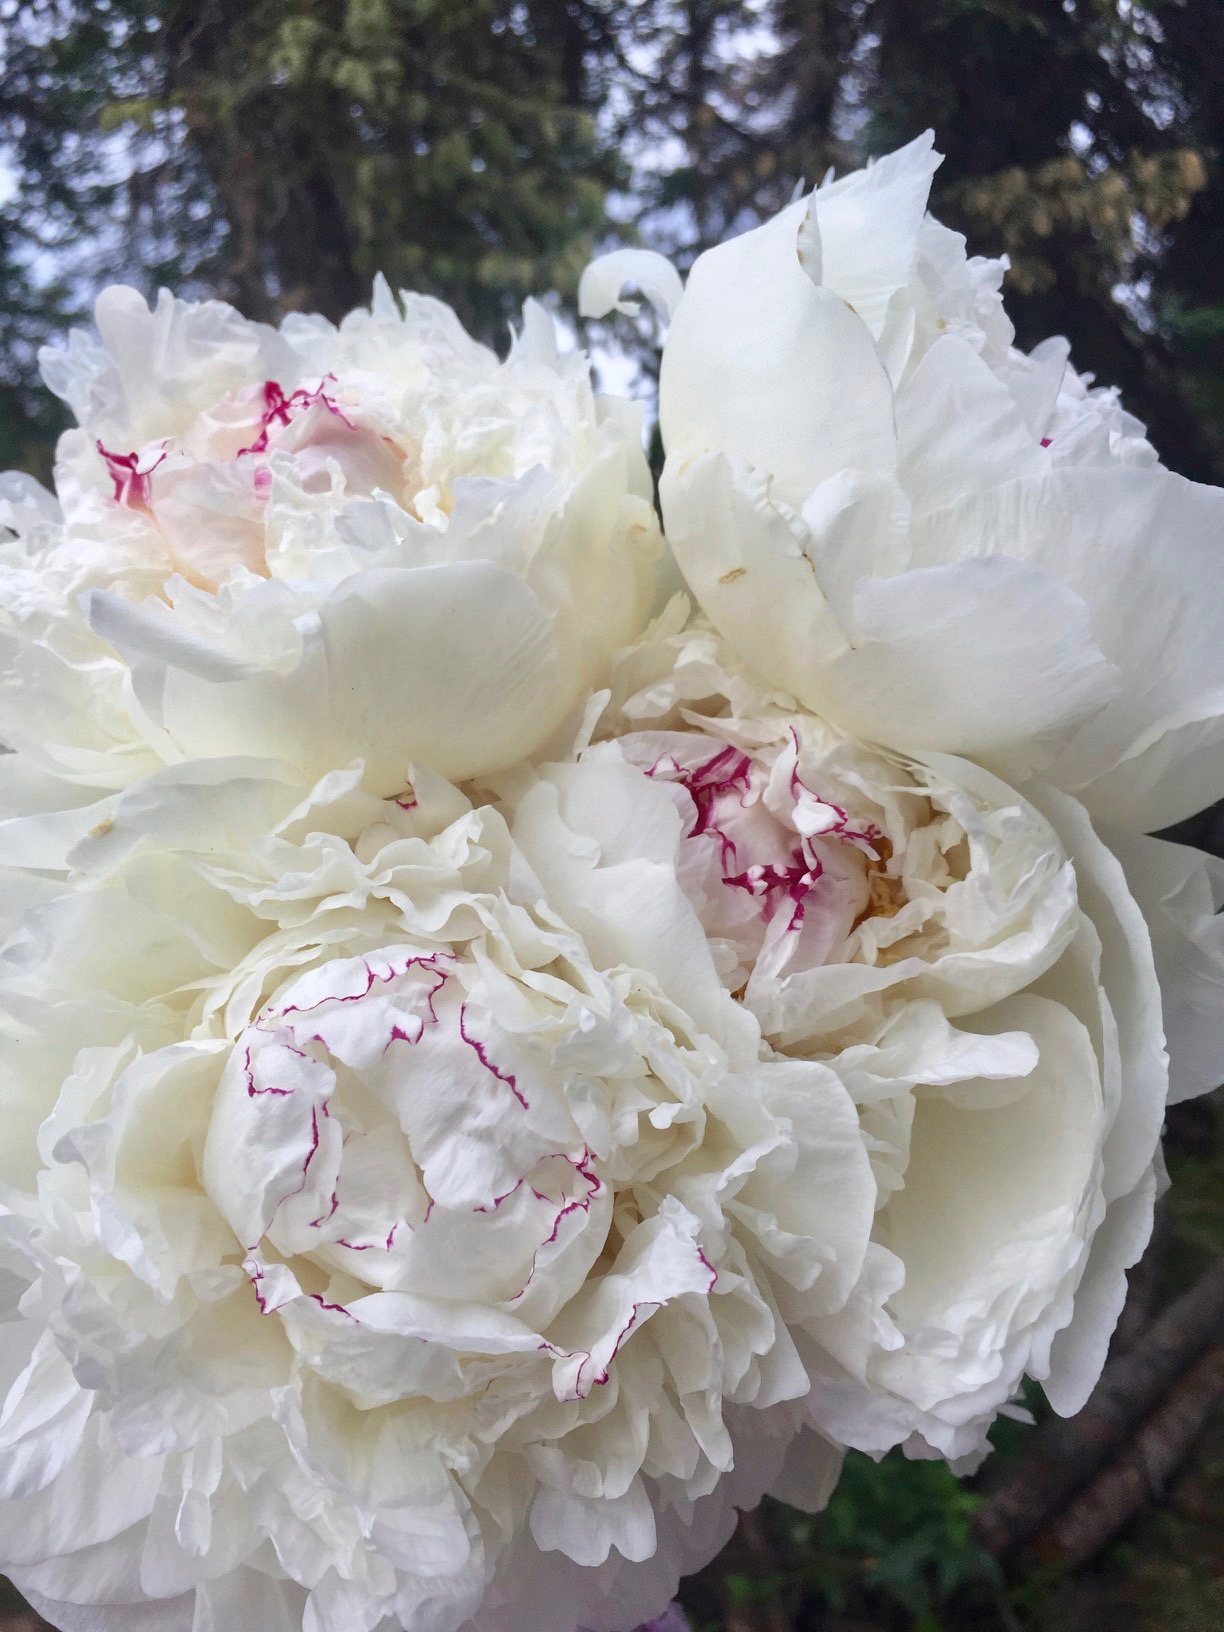 How to Plant a Peony Cutting Garden from Team Flower